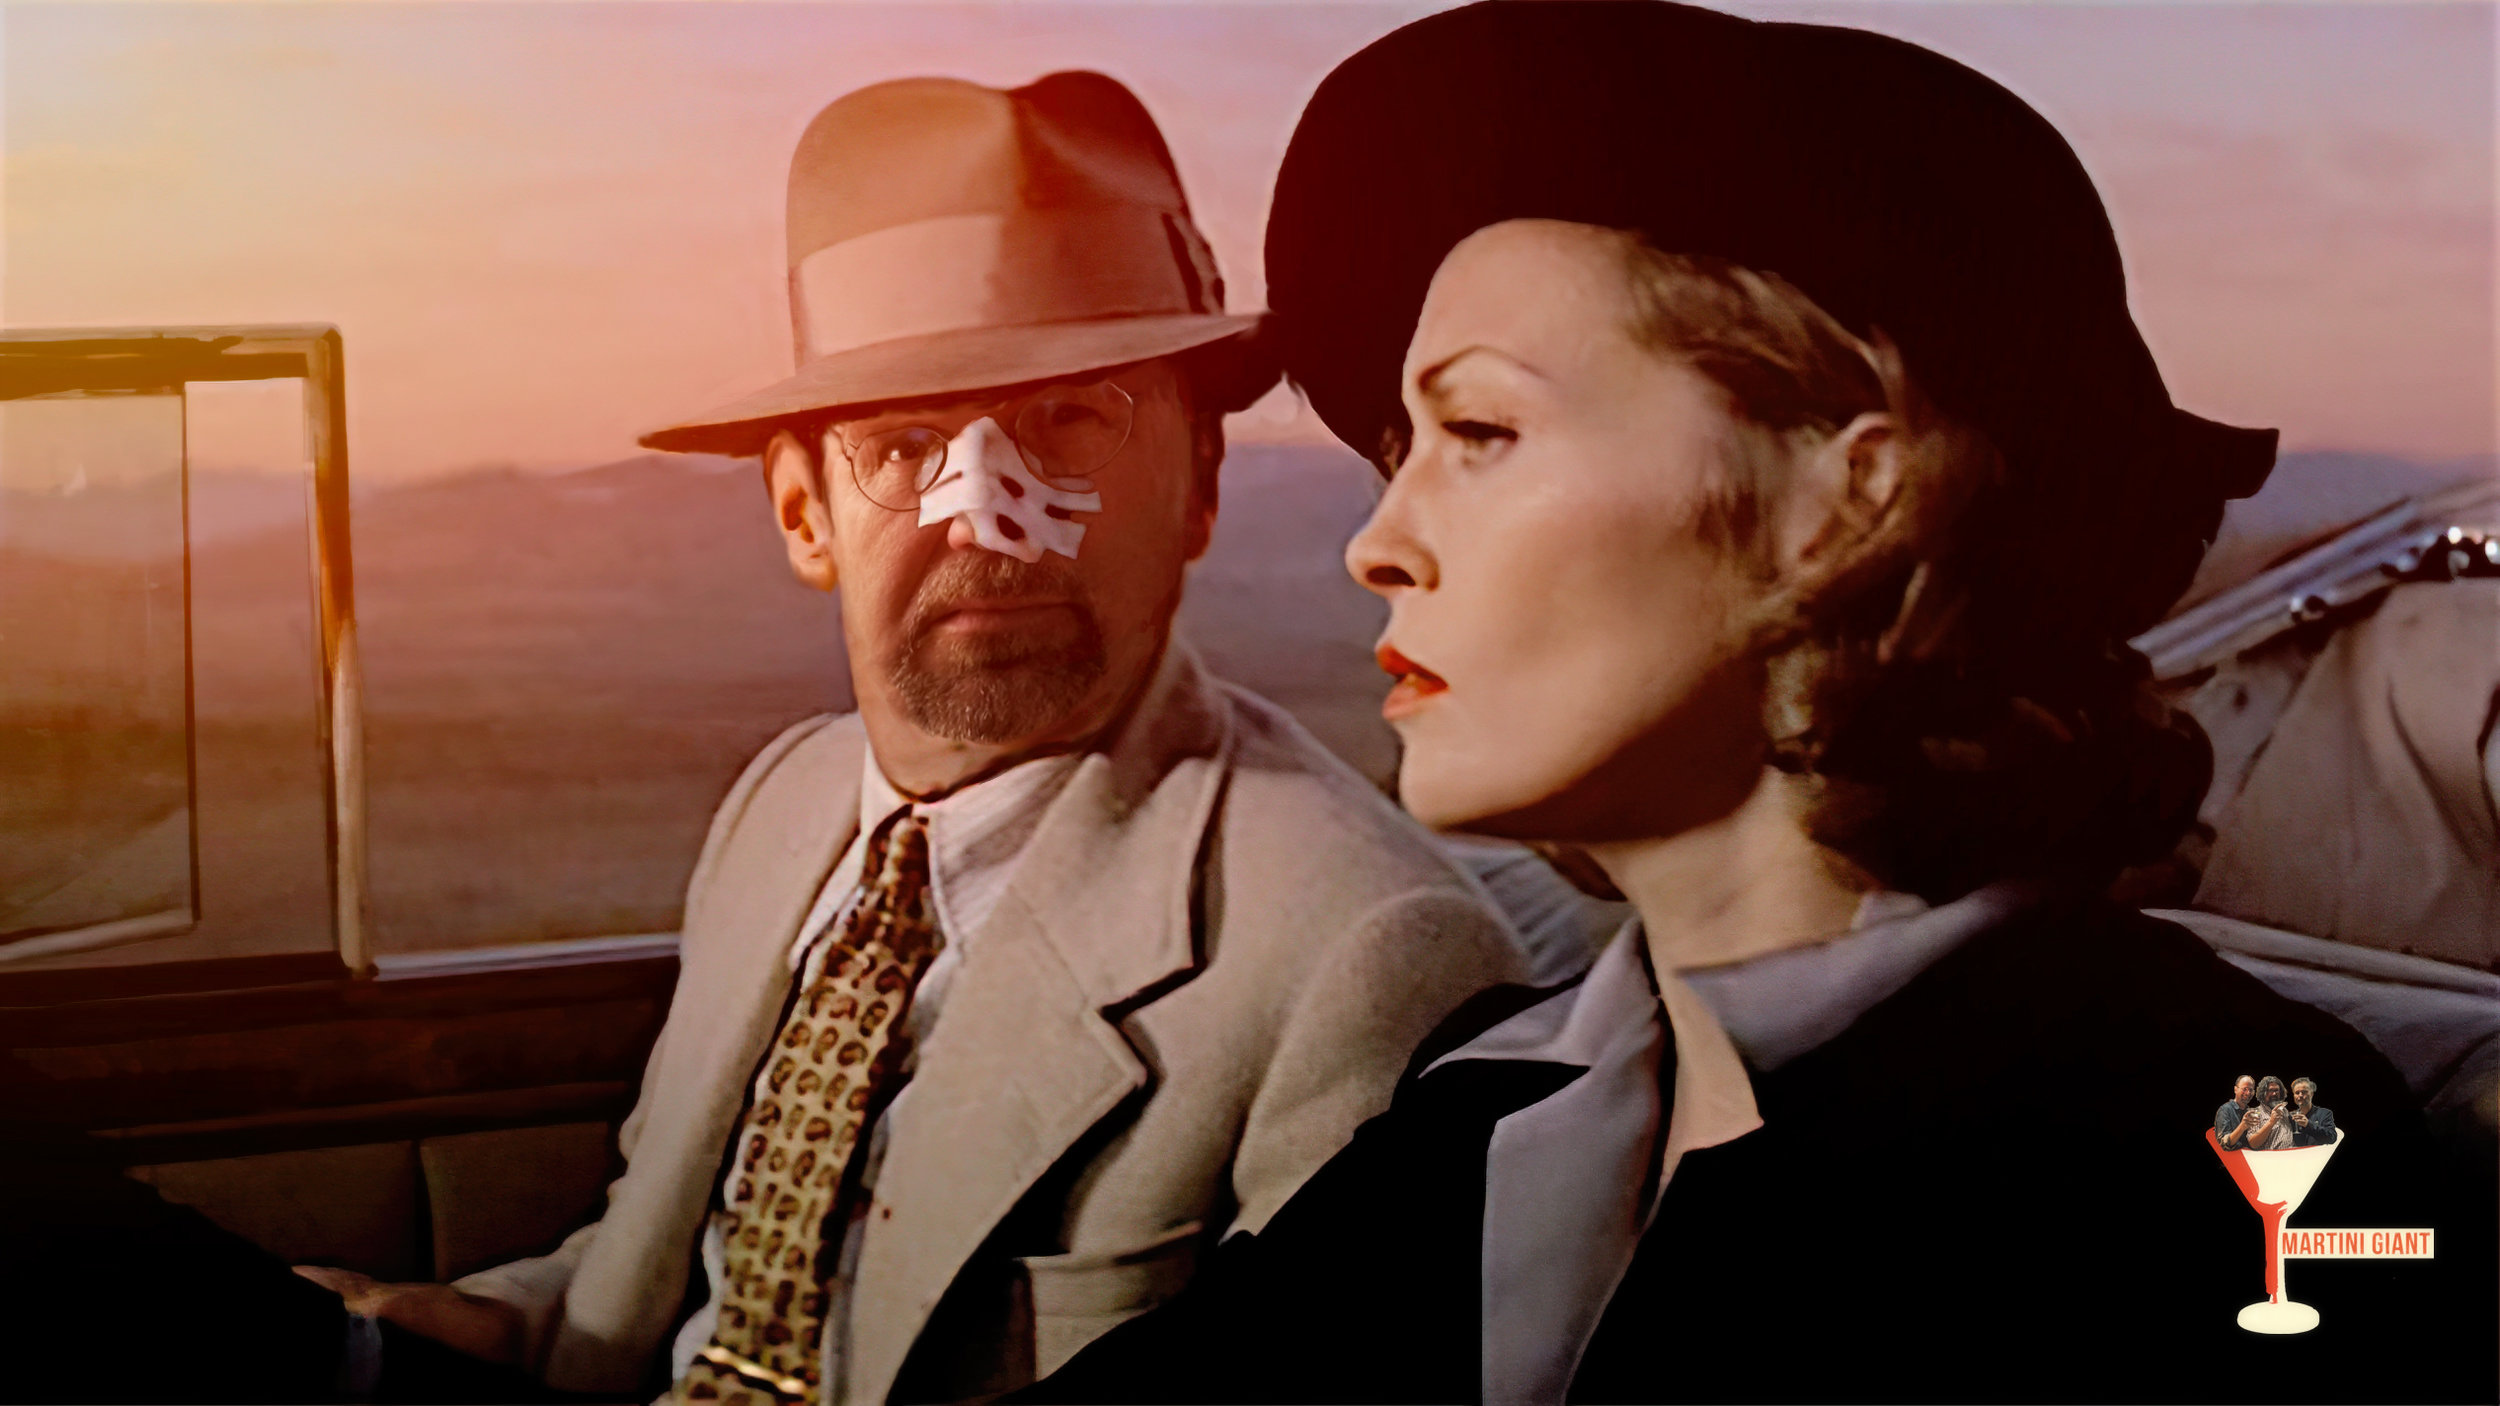 FINAL_GUMshoe_CHRIS_004.jpg